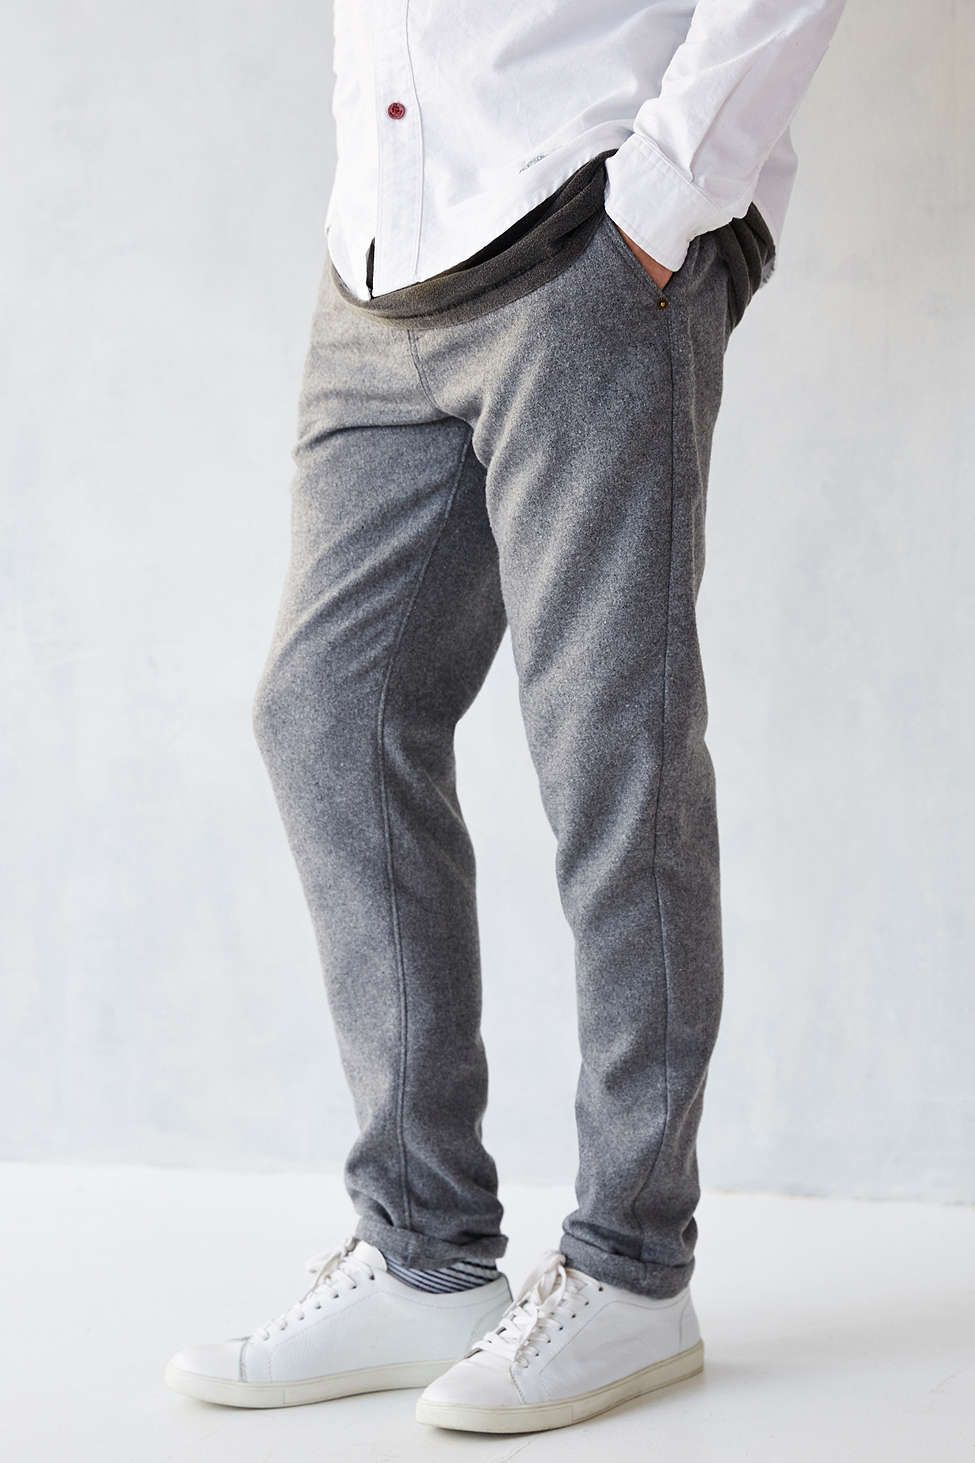 CPO Woolen Awesome Skinny-Fit Chino Pant